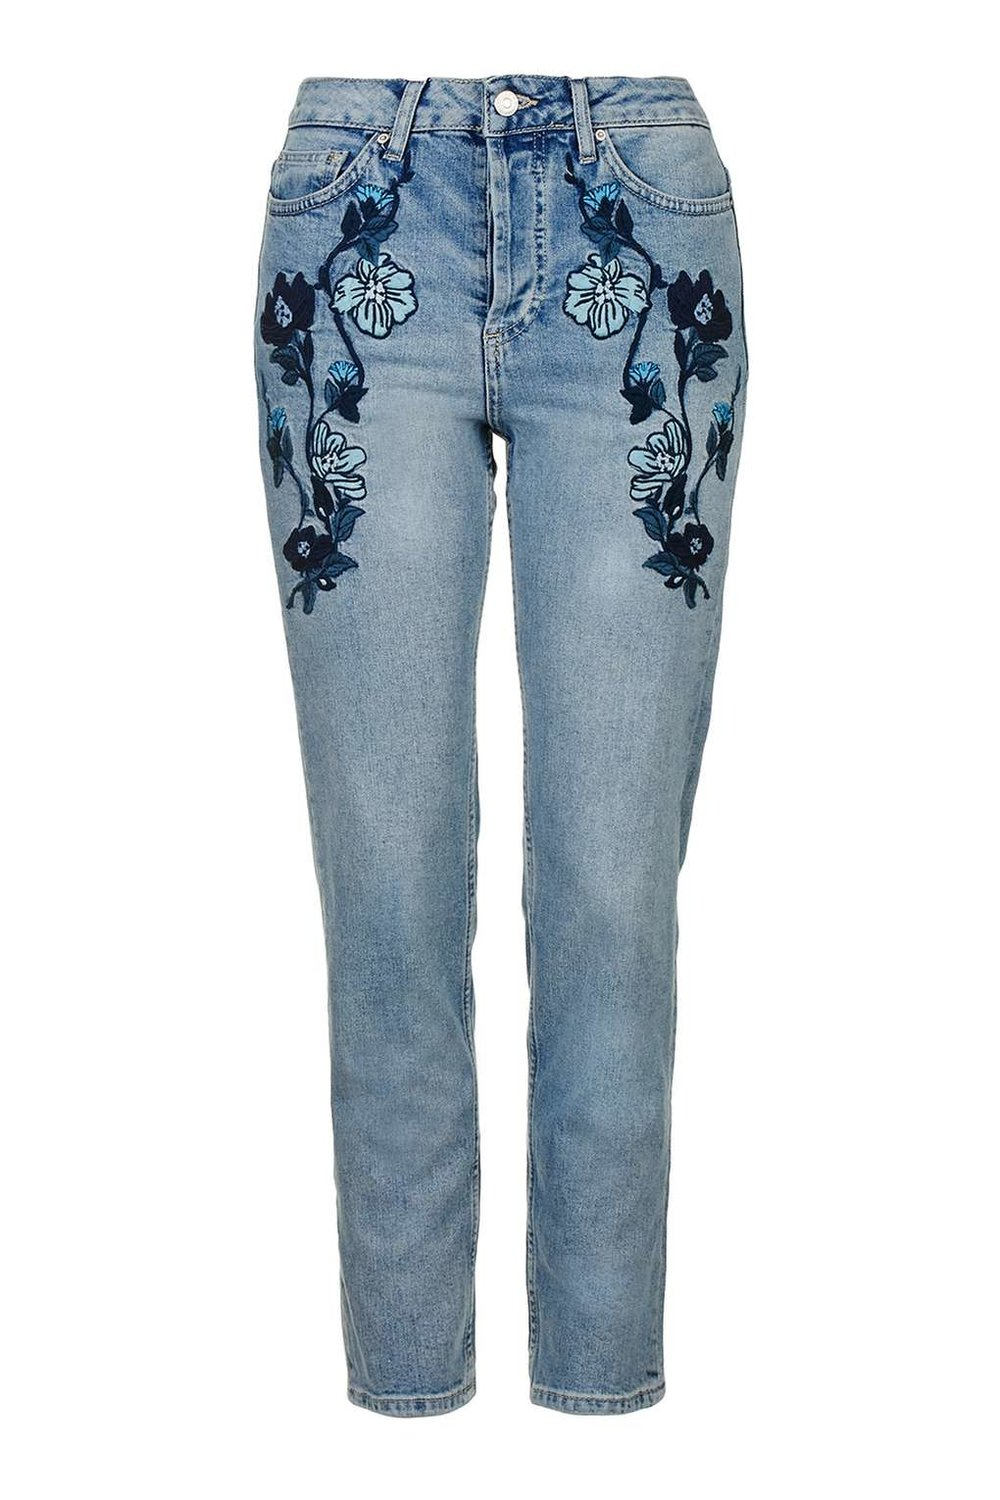 Topshop Blue EMbroidered Jeans.jpg